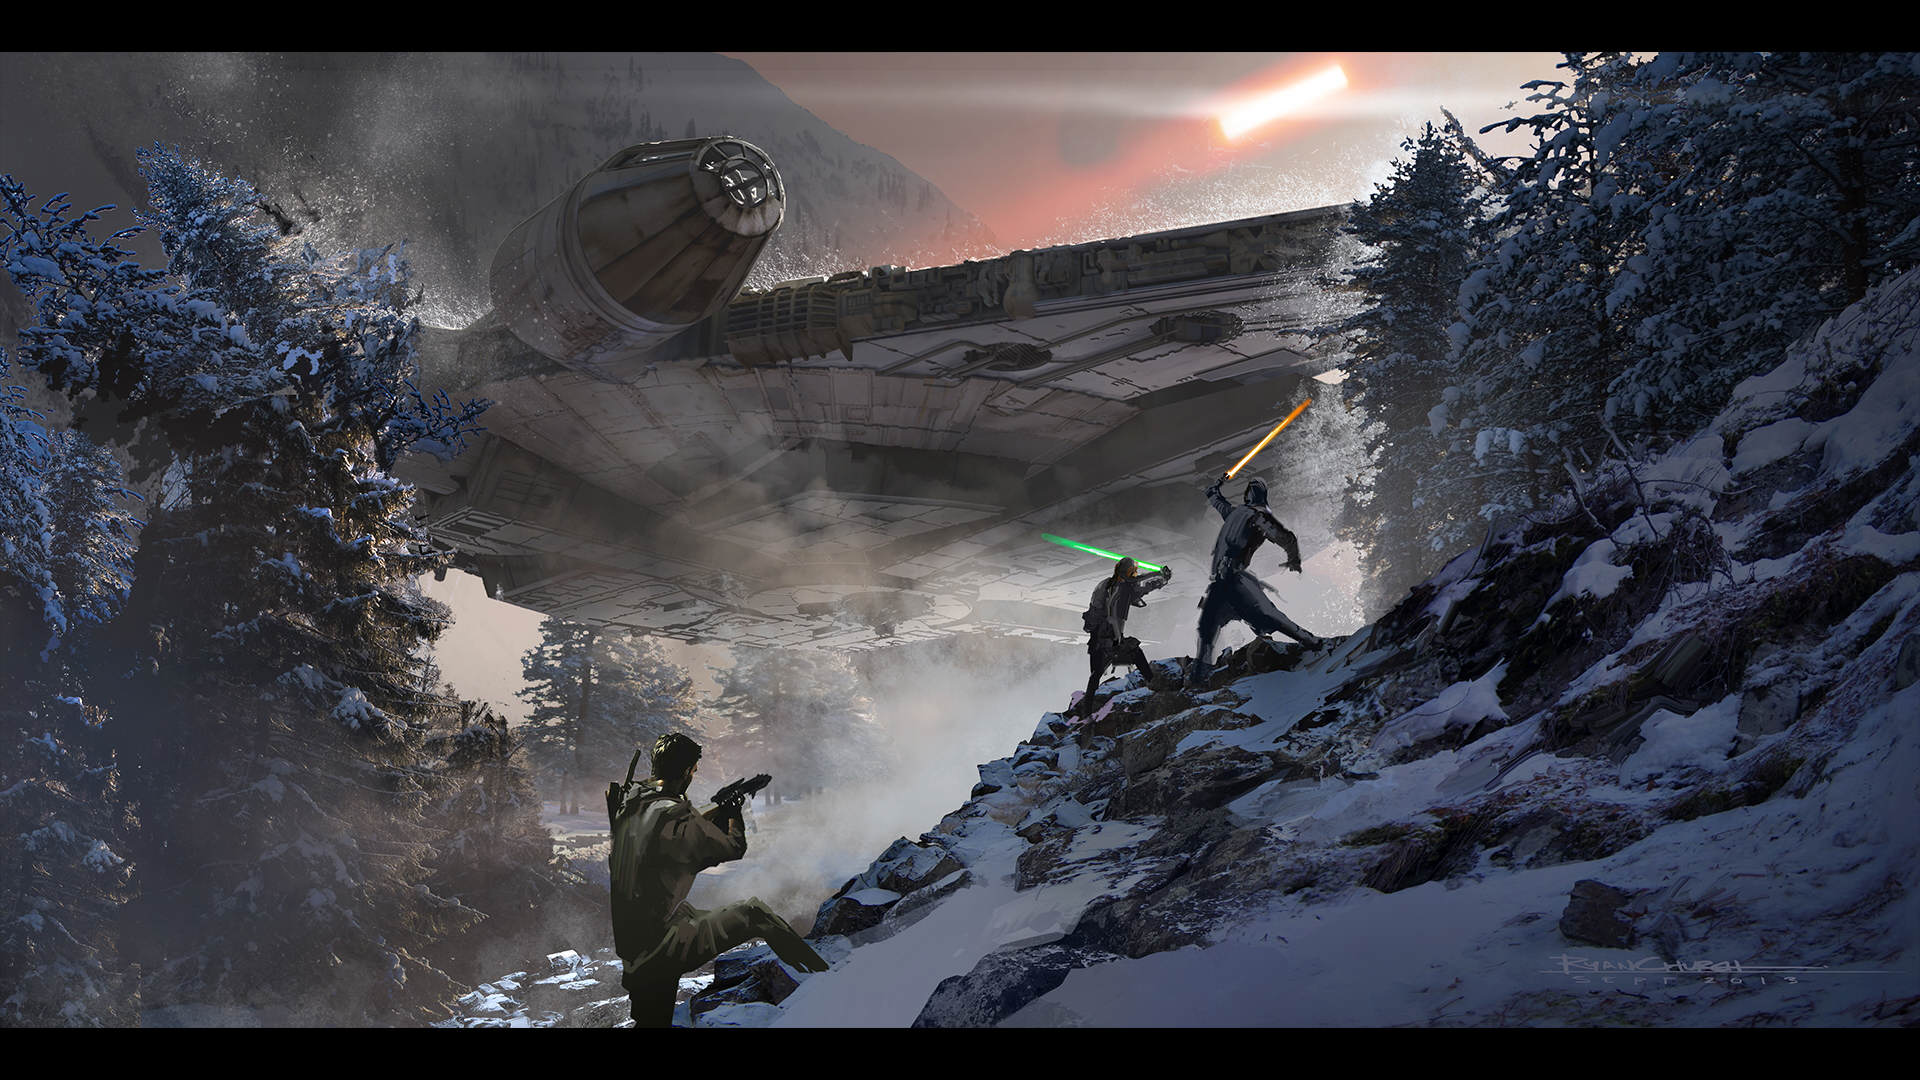 ARTDEPT VD TFA 023 1 Star Wars Creators Reveal Awesome Force Awakens Concept Art